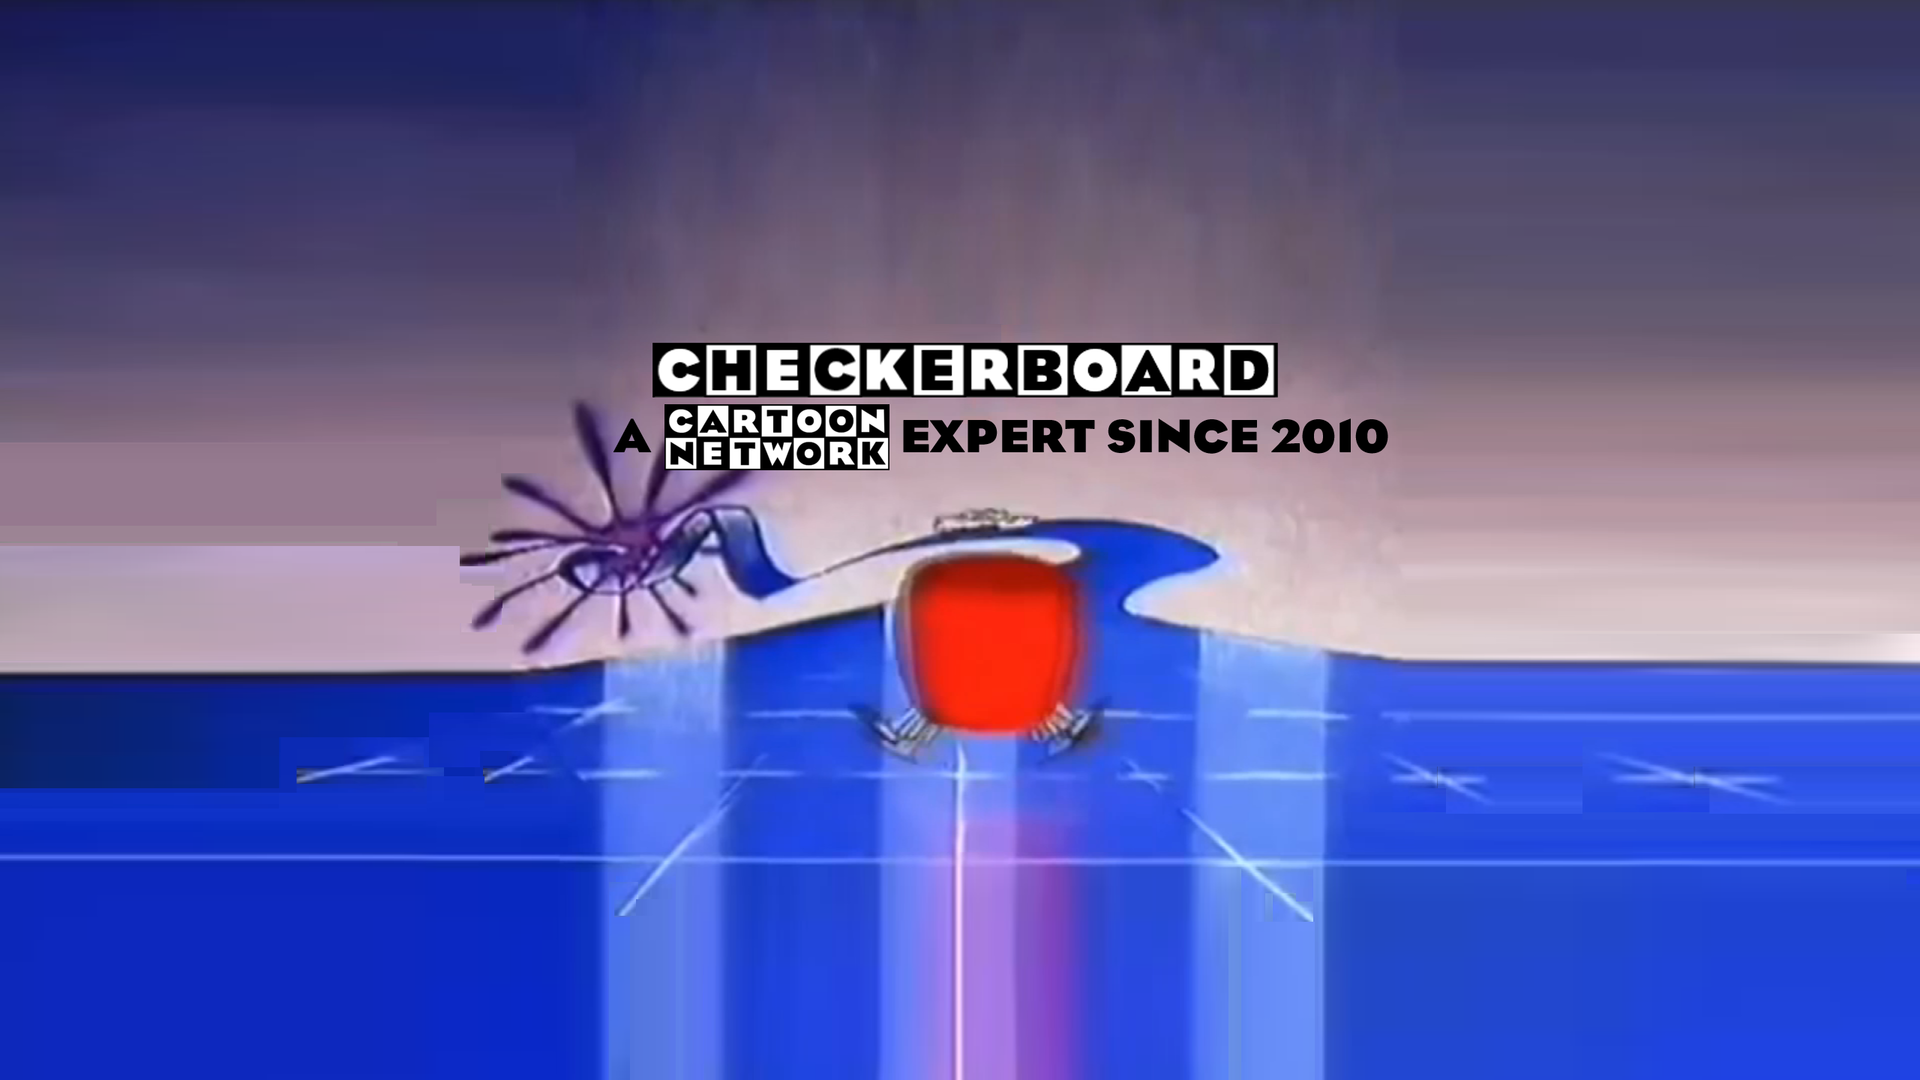 thumbforcheckerboard.png